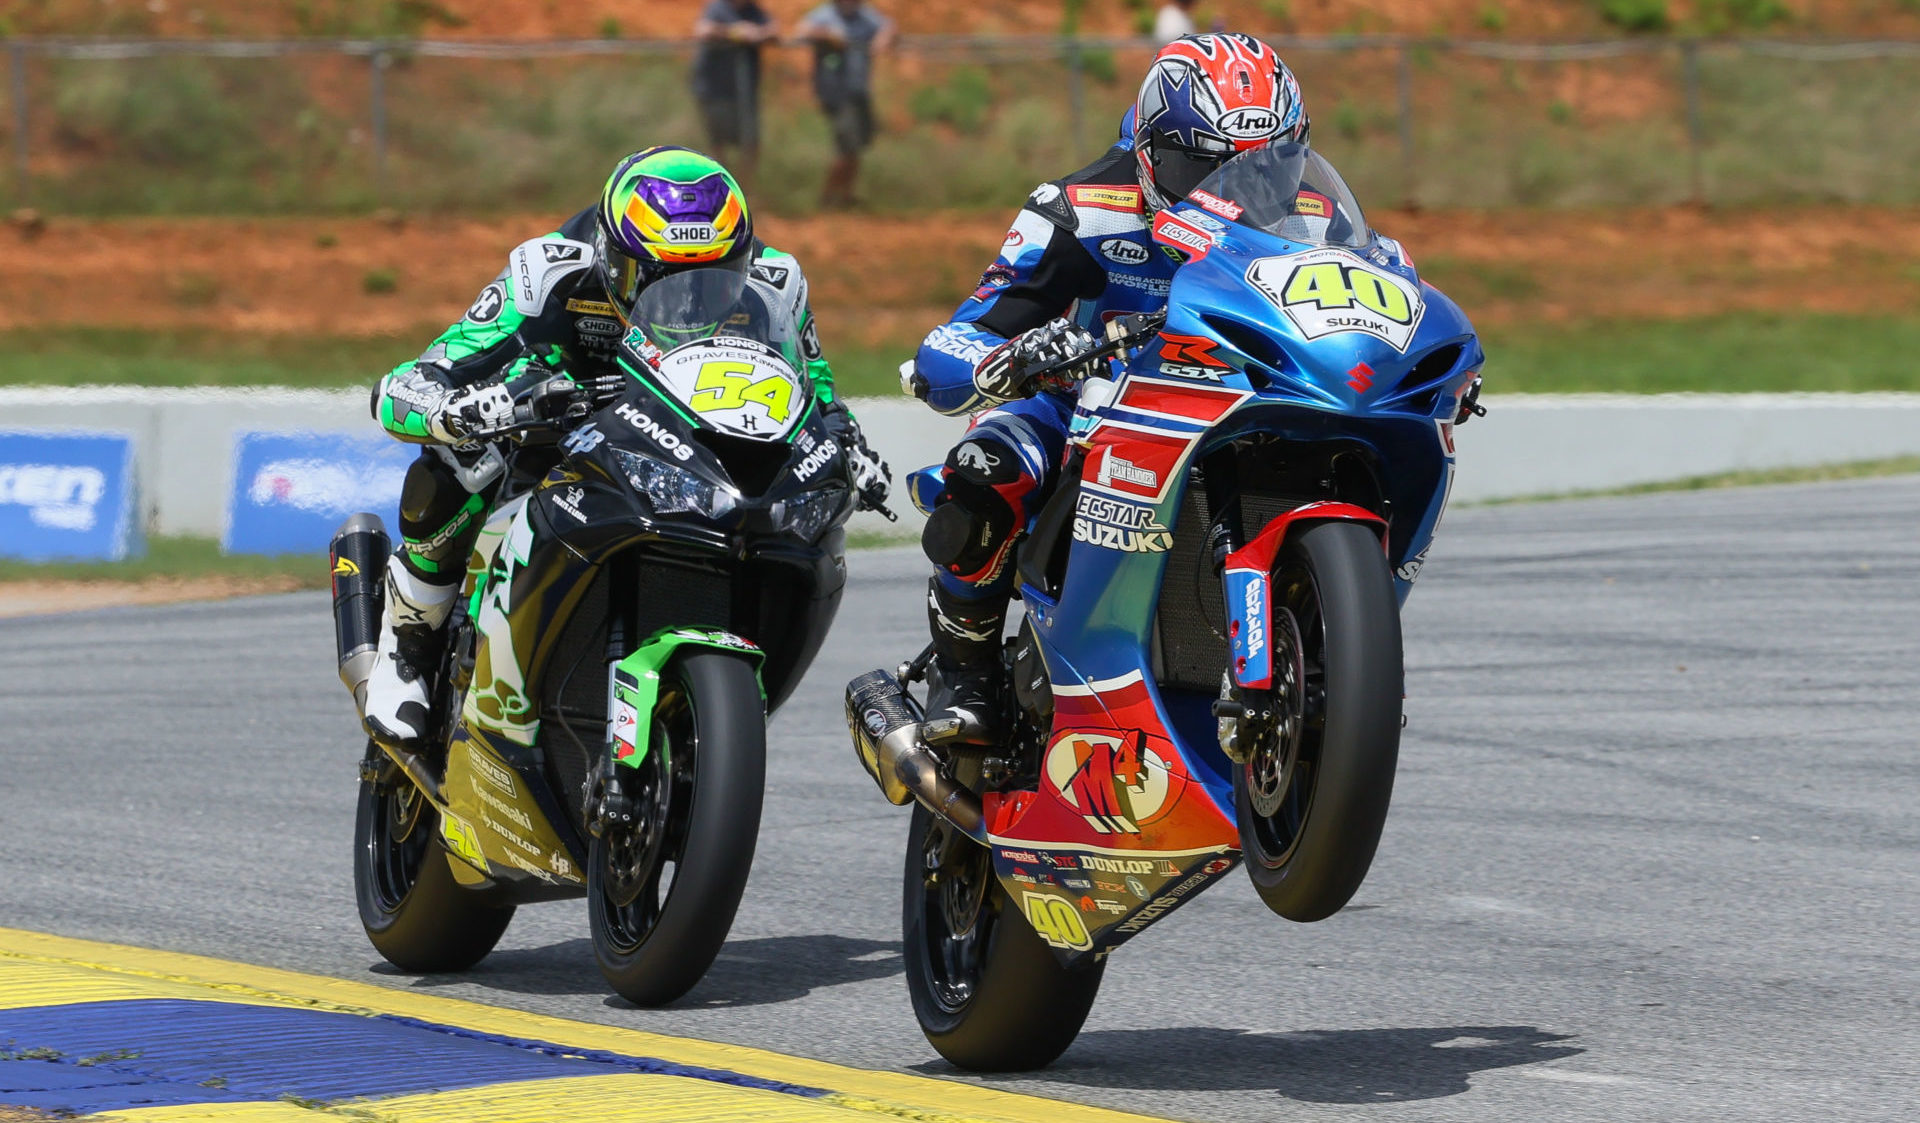 Sean Dylan Kelly (40) and Richie Escalante (54) battling for the lead in a MotoAmerica Supersport race at Road Atlanta in 2020. Photo by Brian J. Nelson, courtesy MotoAmerica.